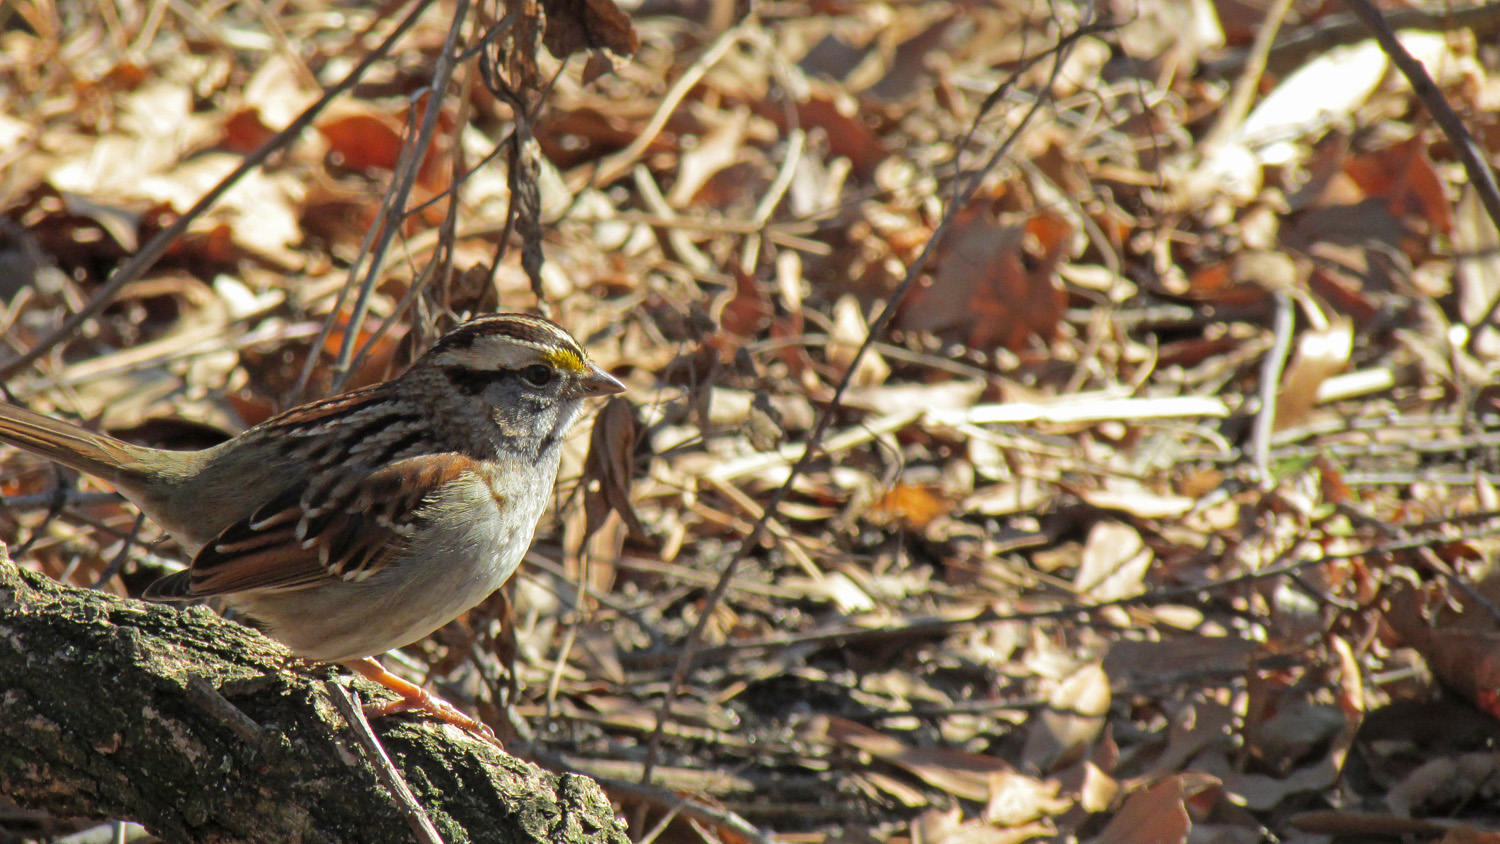 White-Throated Sparrow, Central Park, March 4, 2013